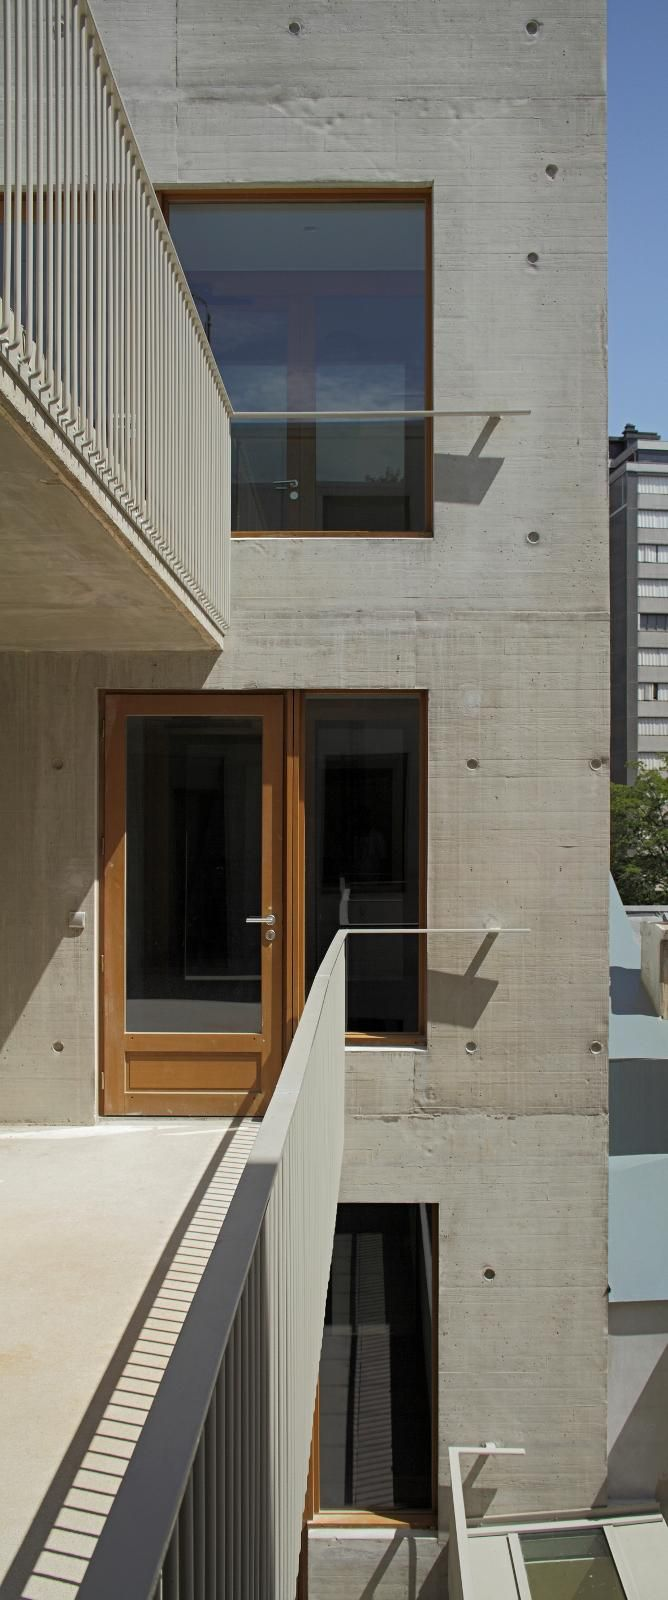 83 best images about housing on pinterest architecture for Architecture du paysage